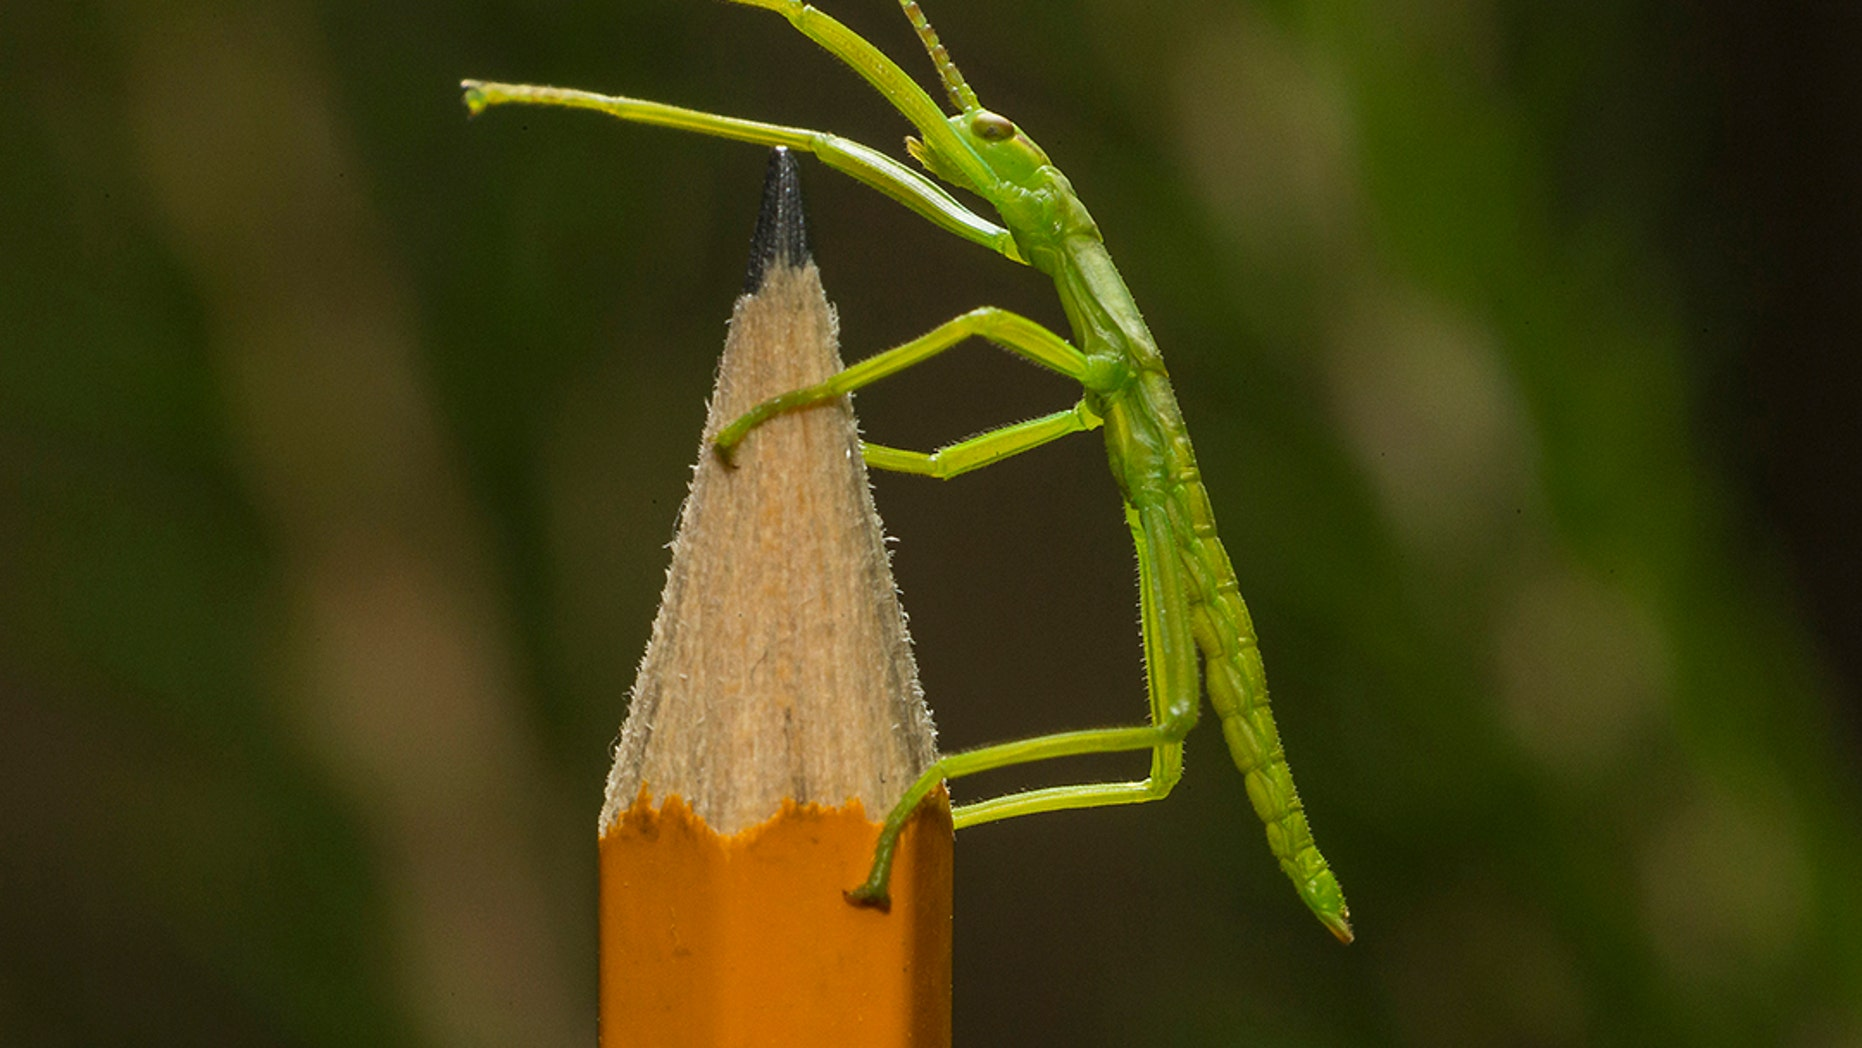 One of the newly-hatched tree lobster stick insects (Ken Bohn, San Diego Zoo).